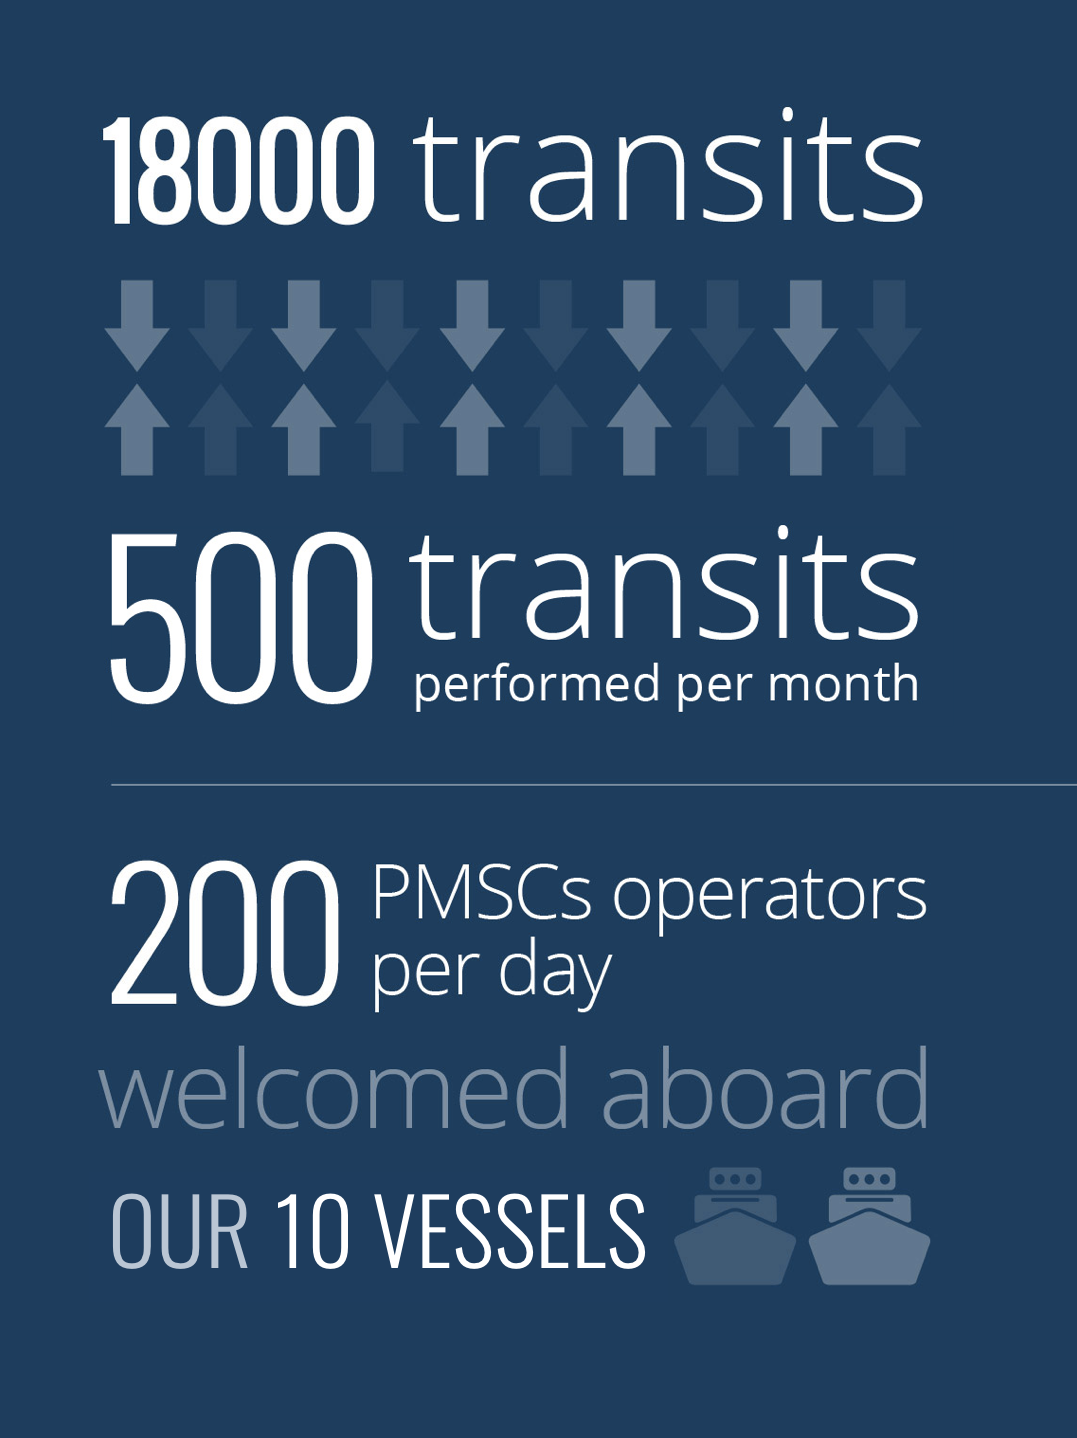 18000 transits, 500 transits realised per month, 200 PMSCs operators per day welcomed aboard our 2 vessels